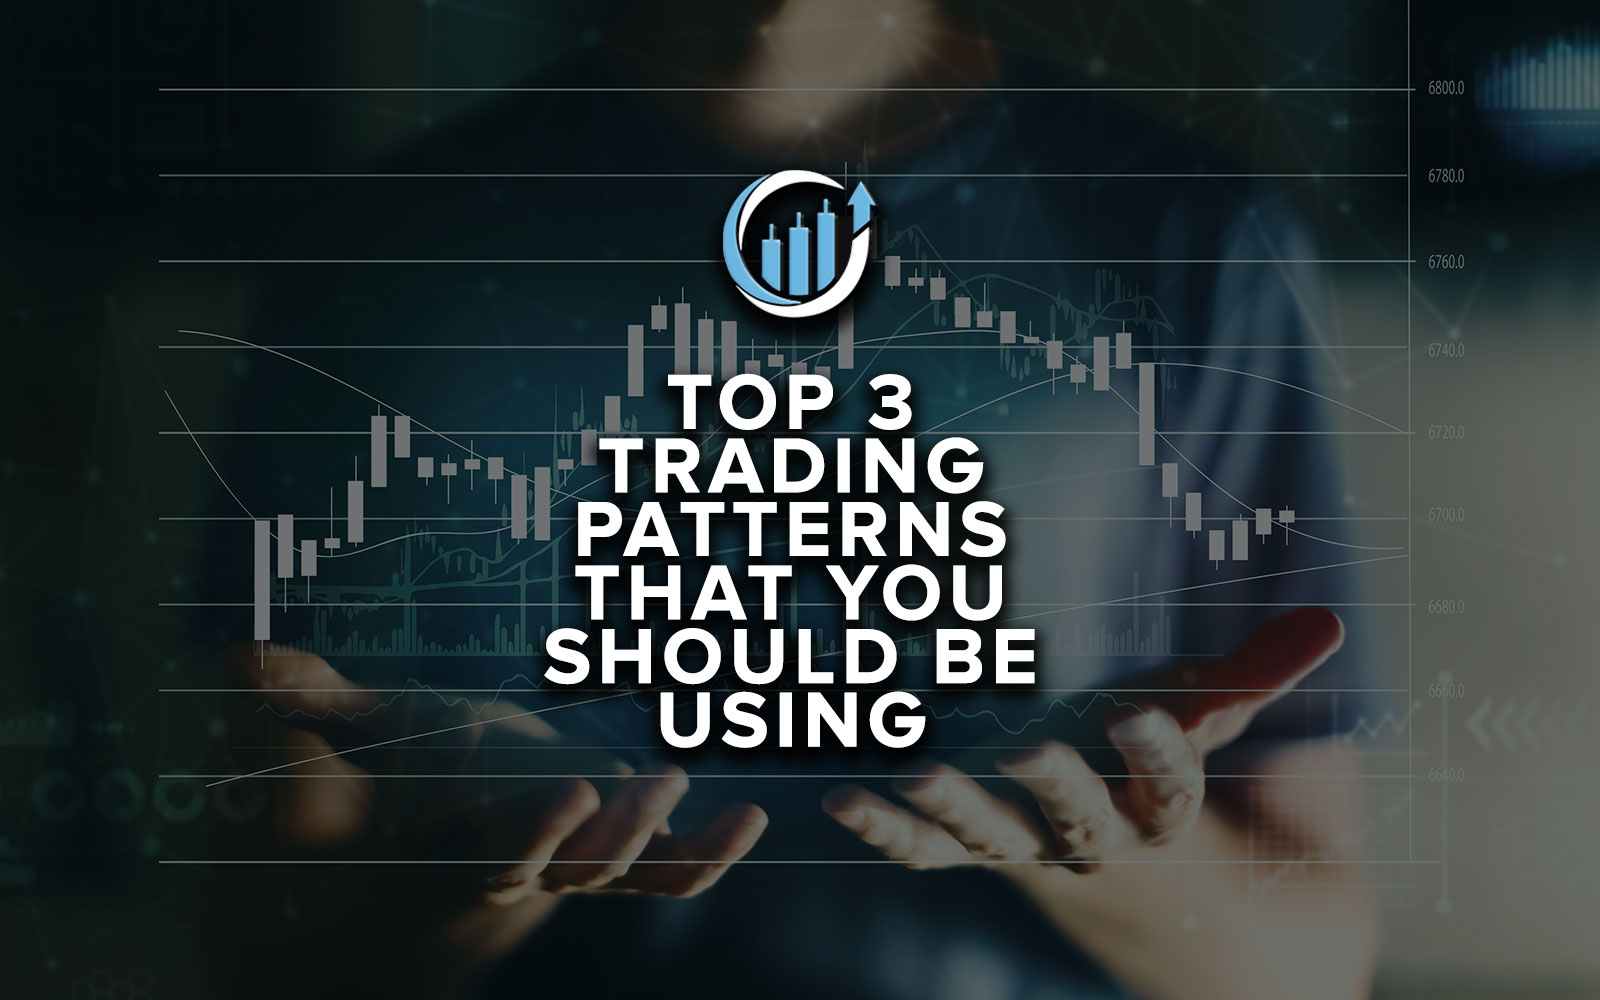 Forex brokers trade against you